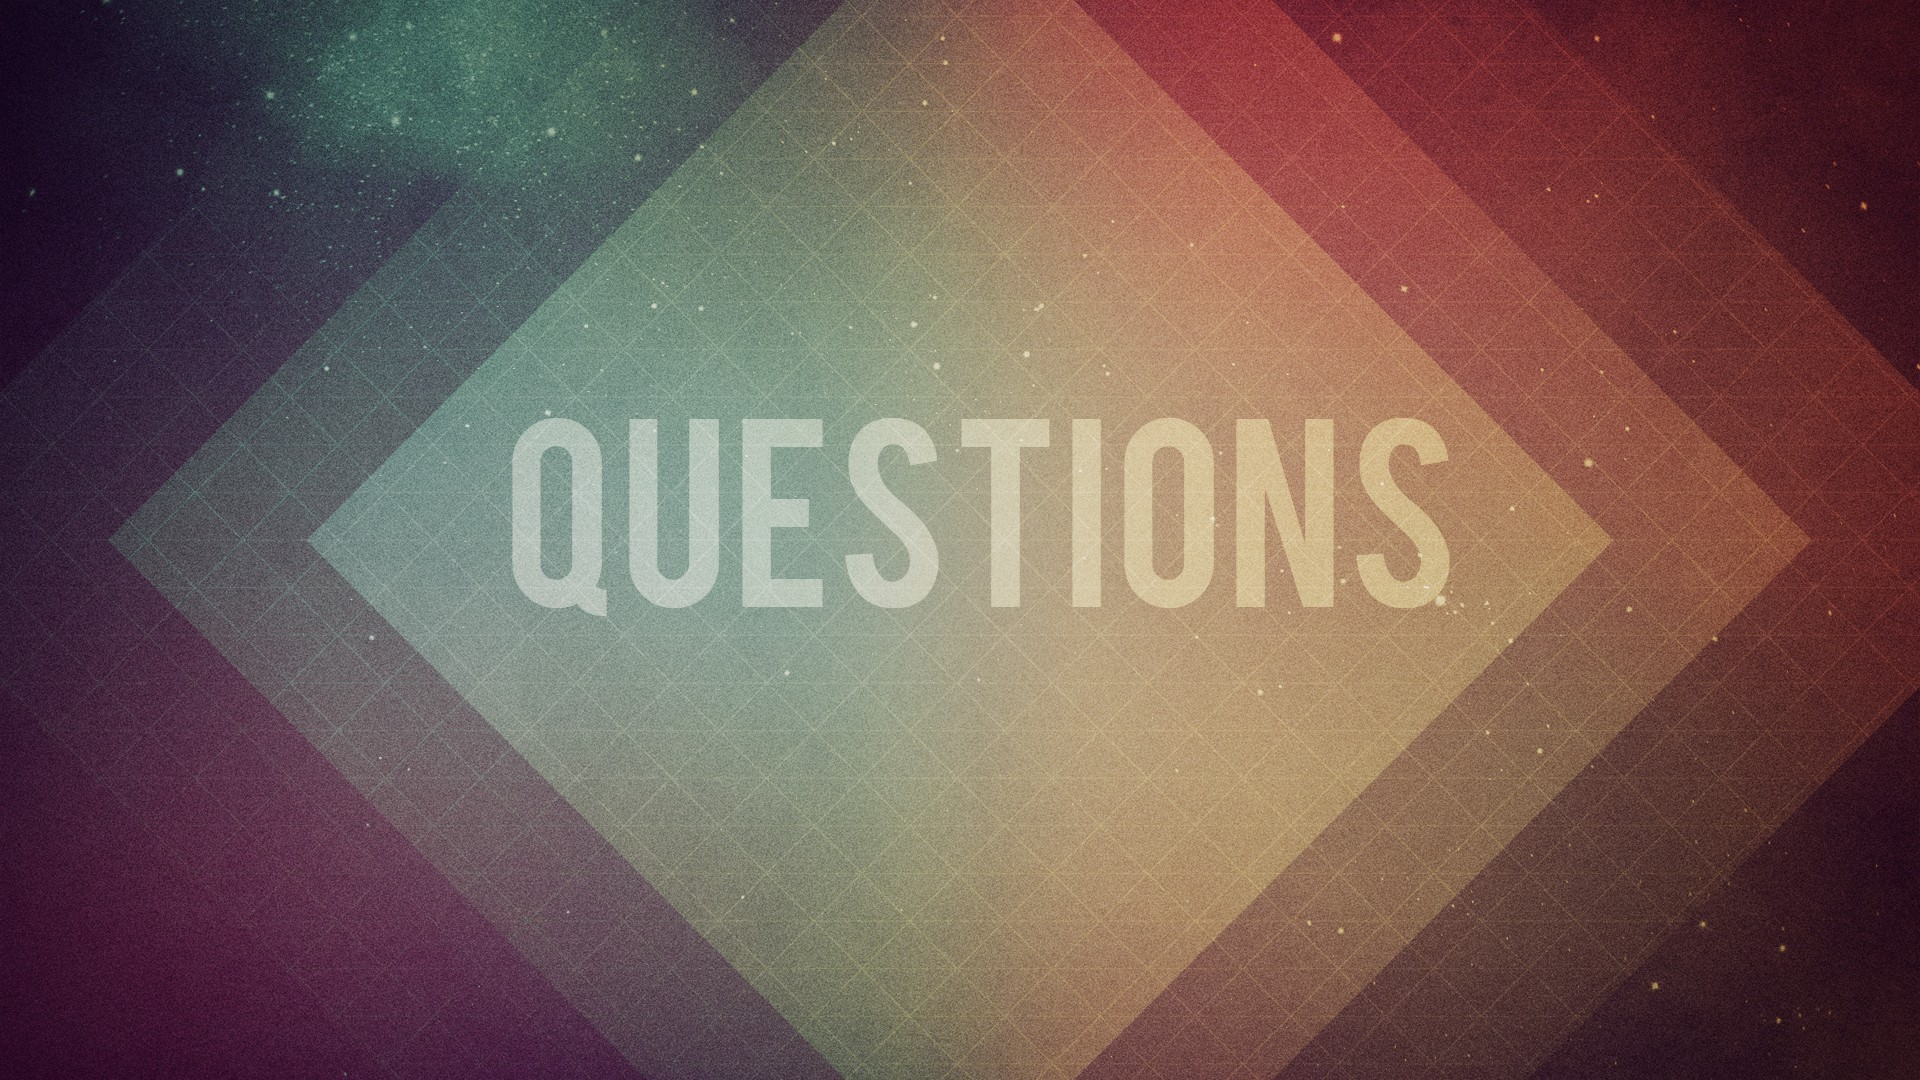 Outer space multicolor text typography questions wallpaper for Wallpaper home improvement questions